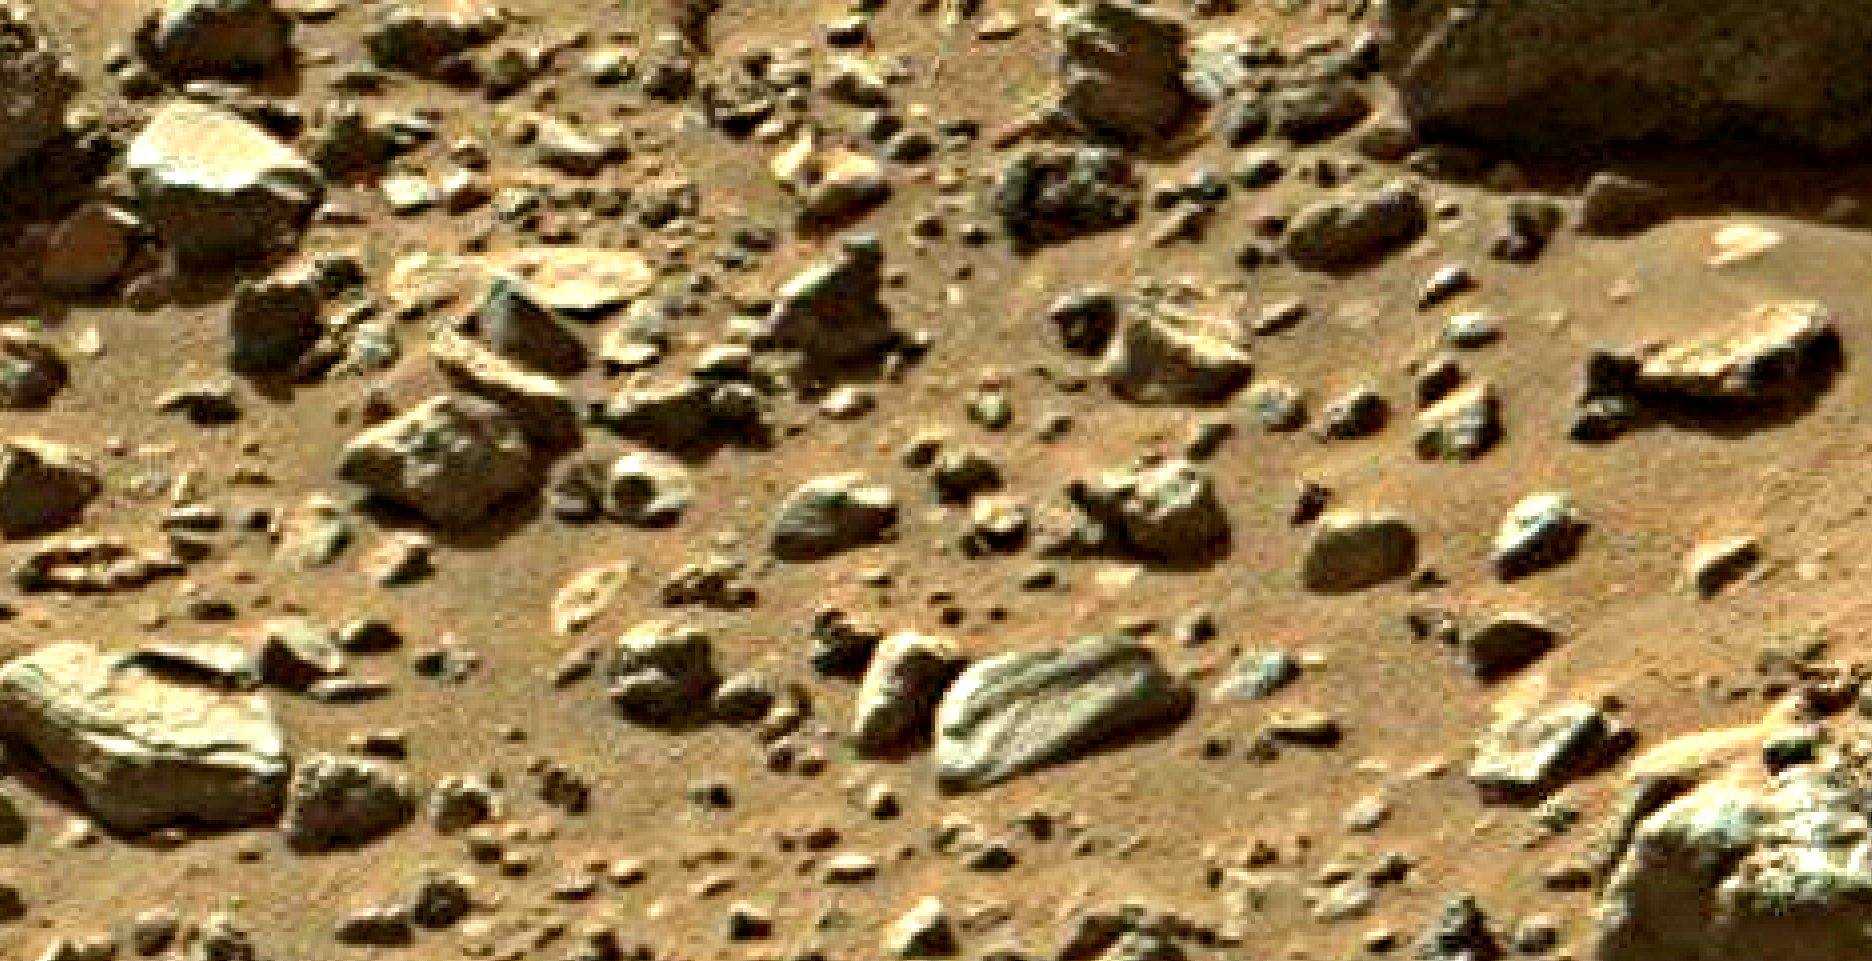 mars sol 1405 anomaly artifacts 7 was life on mars